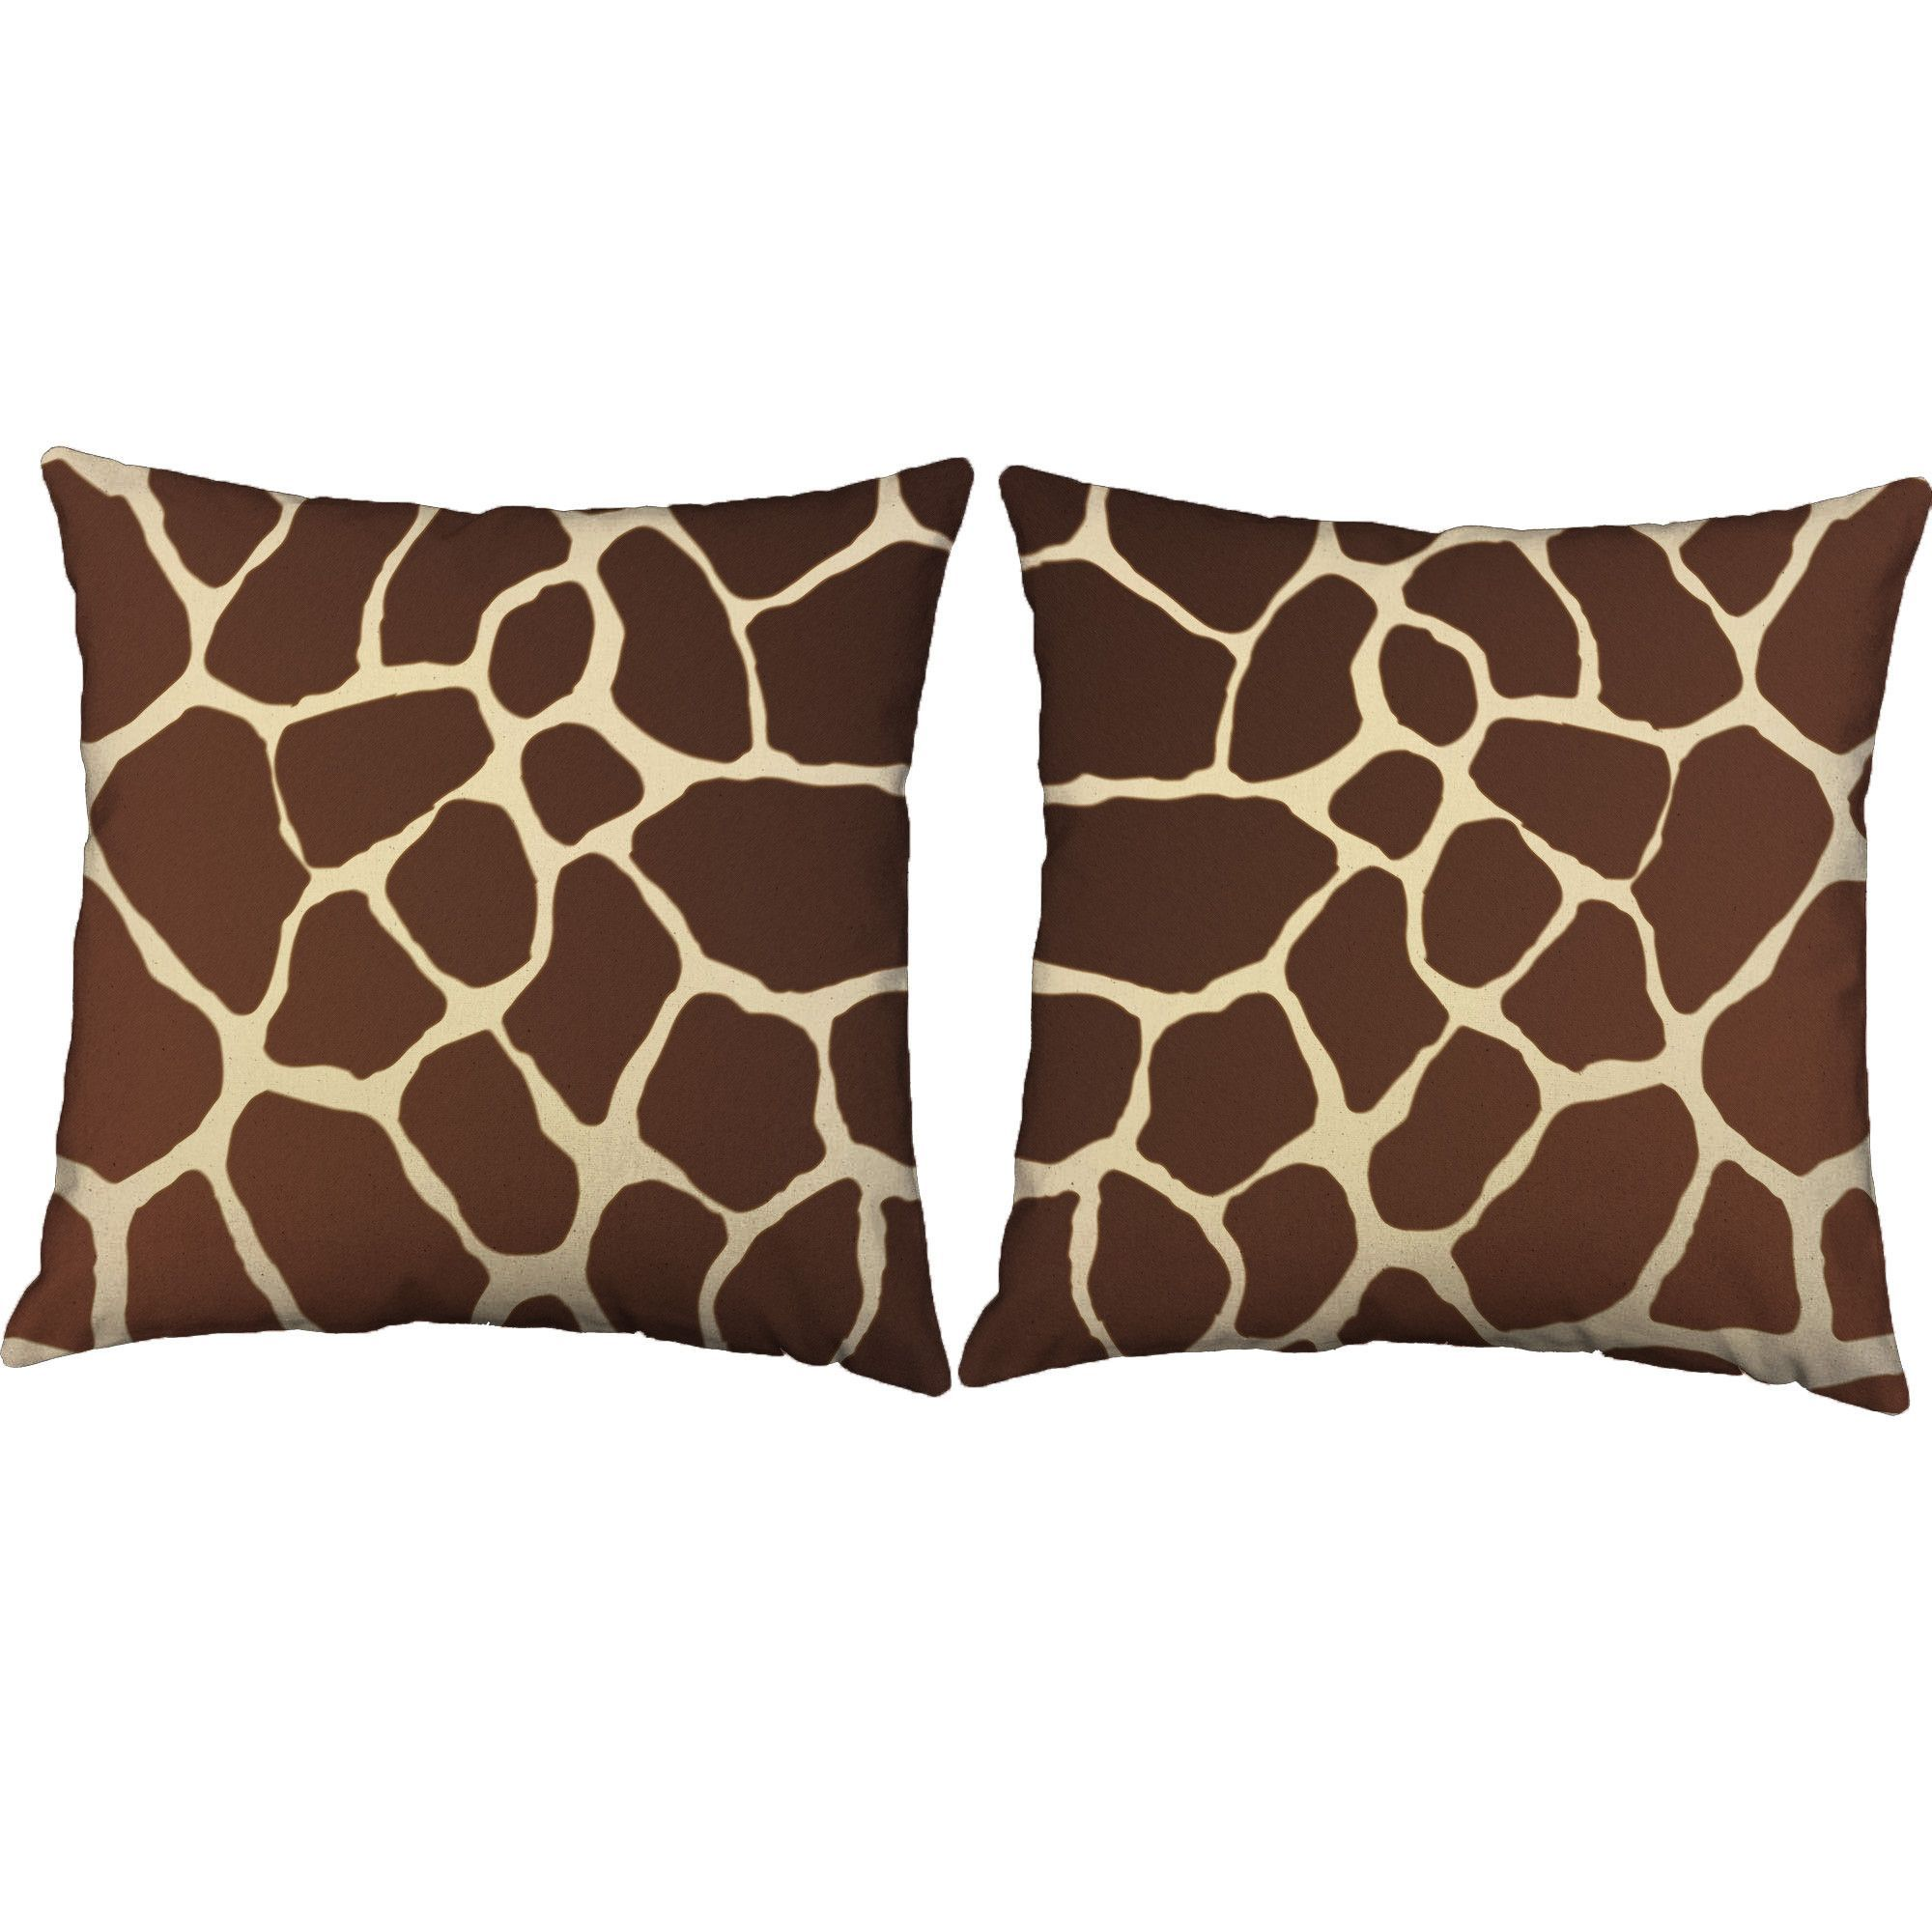 Giraffe Print Throw Pillows - Set of 19 | Around the house ...